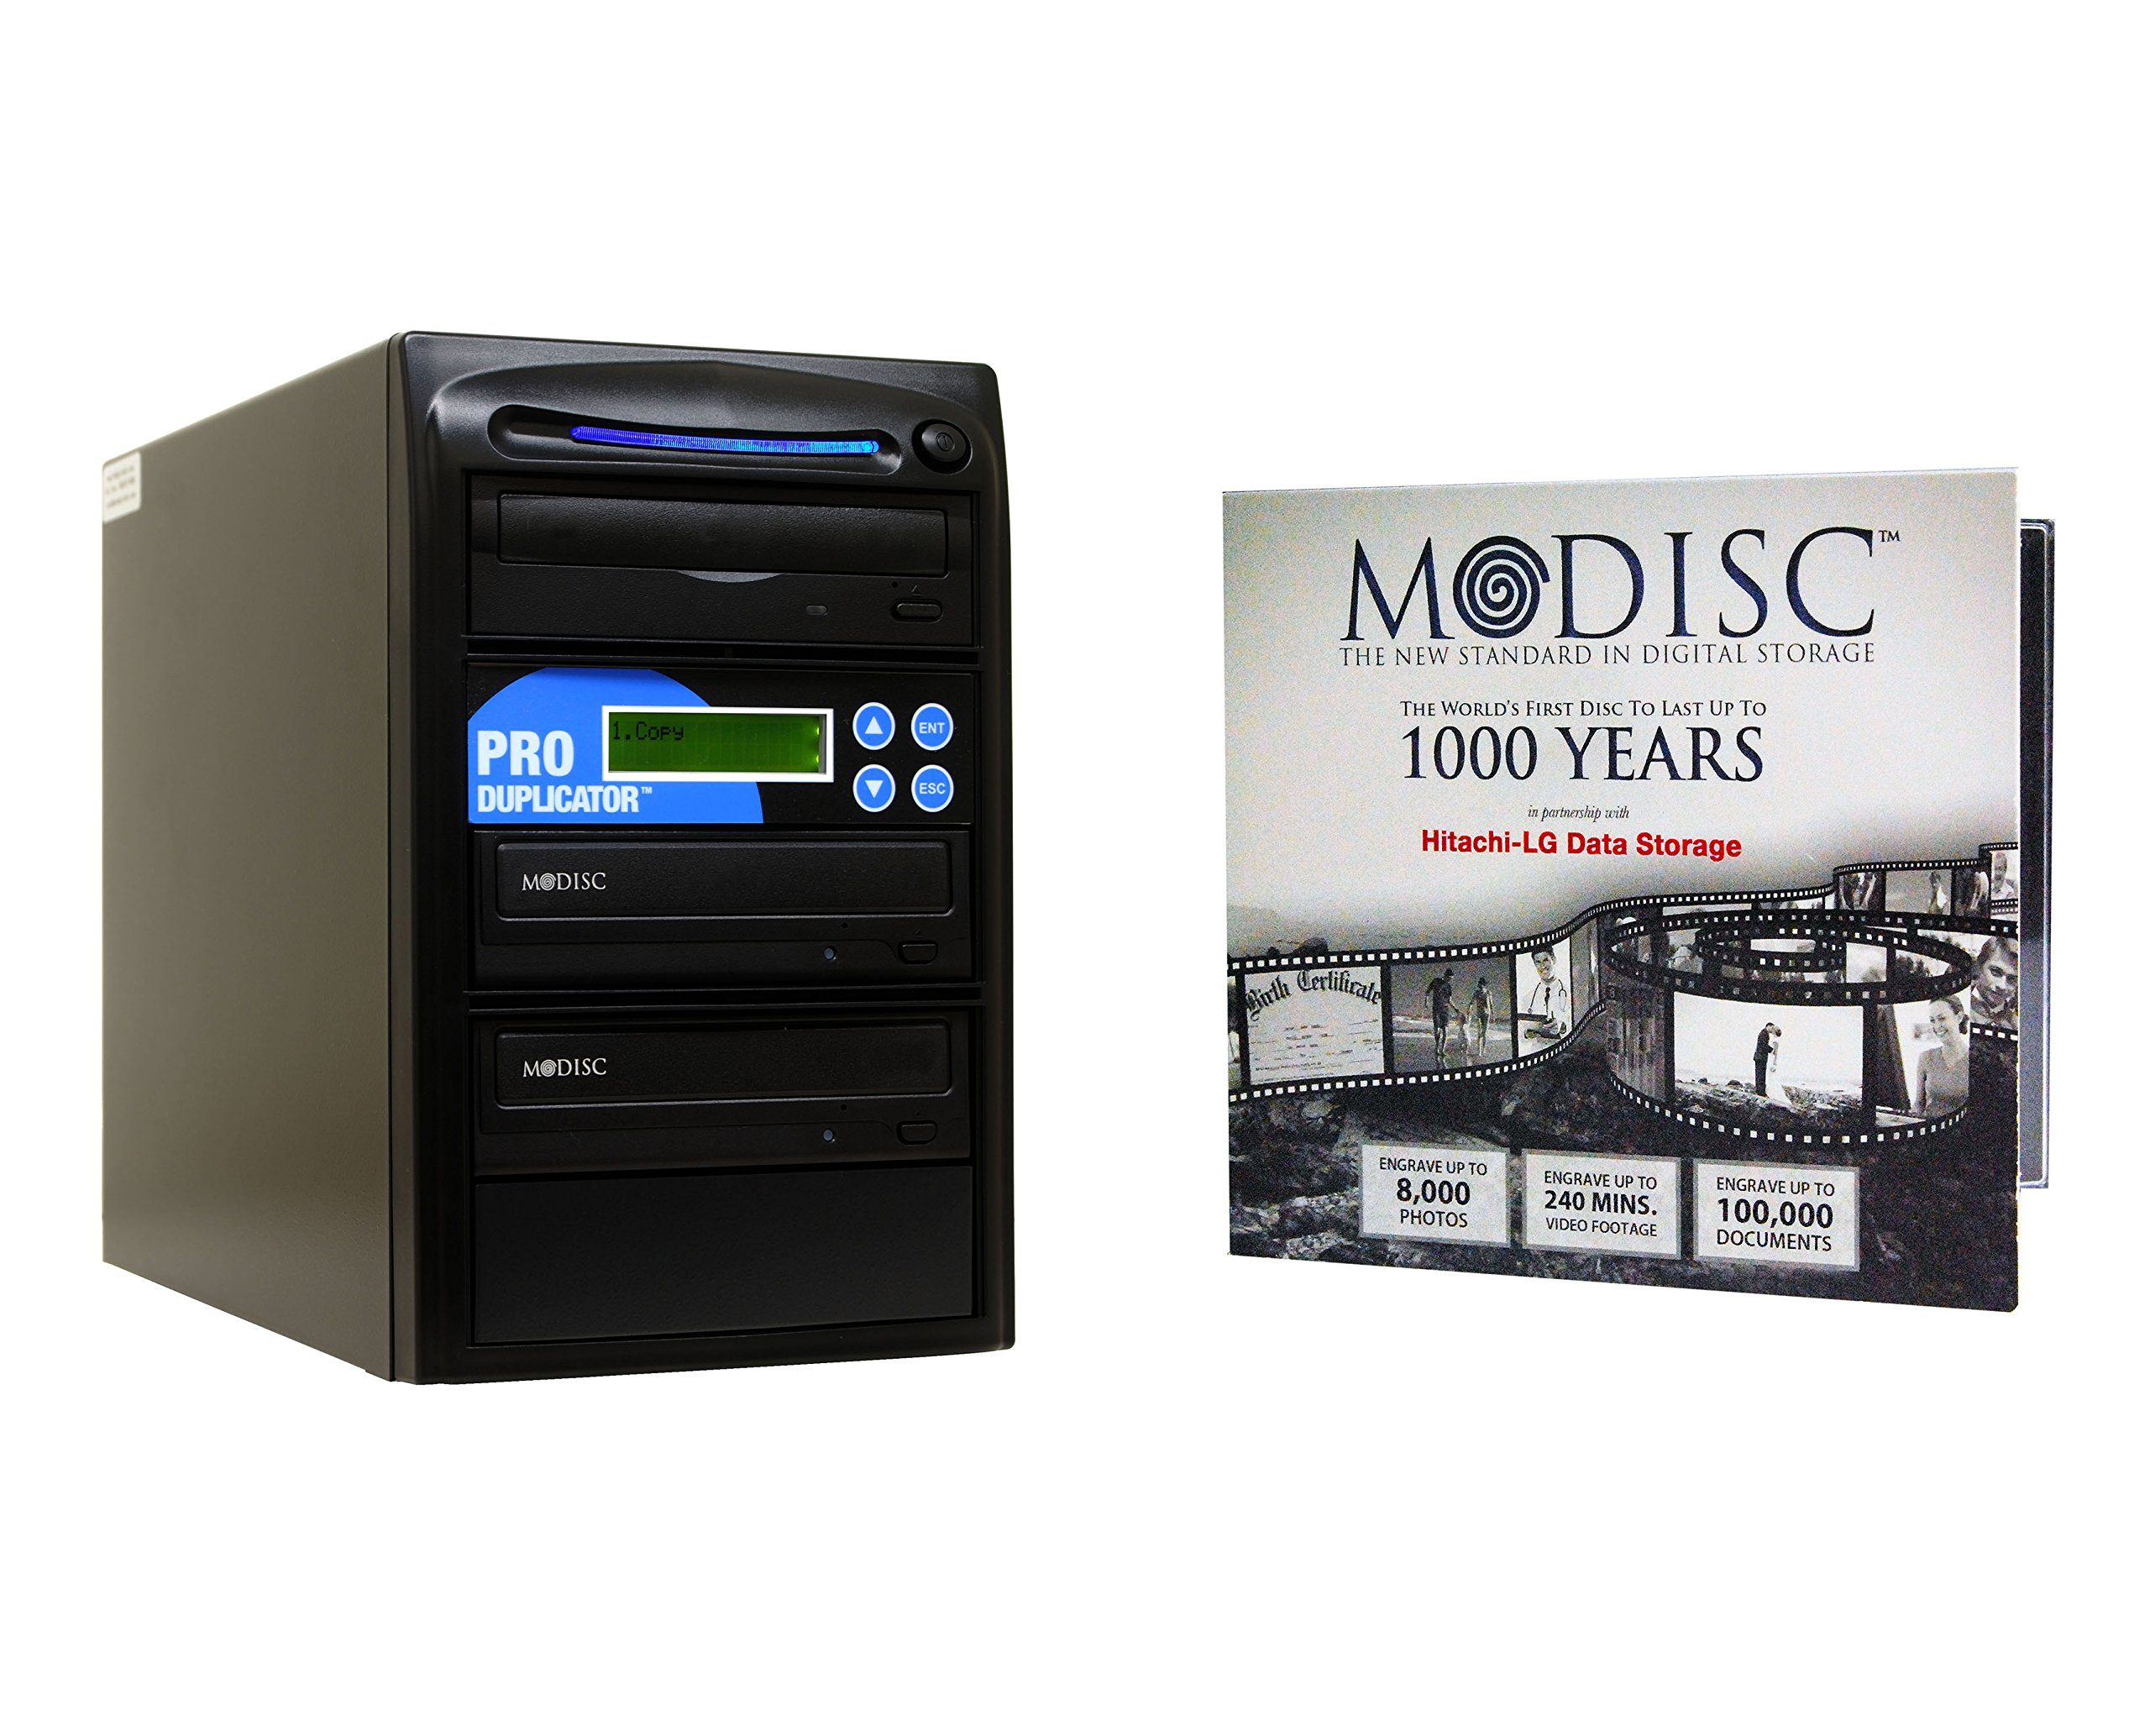 Produplicator 1 to 2 24X M-Disc Support CD DVD Duplicator Bundle with 1 Pack M-DISC, Nero Essentials Burning Software (Standalone Duplication Tower)